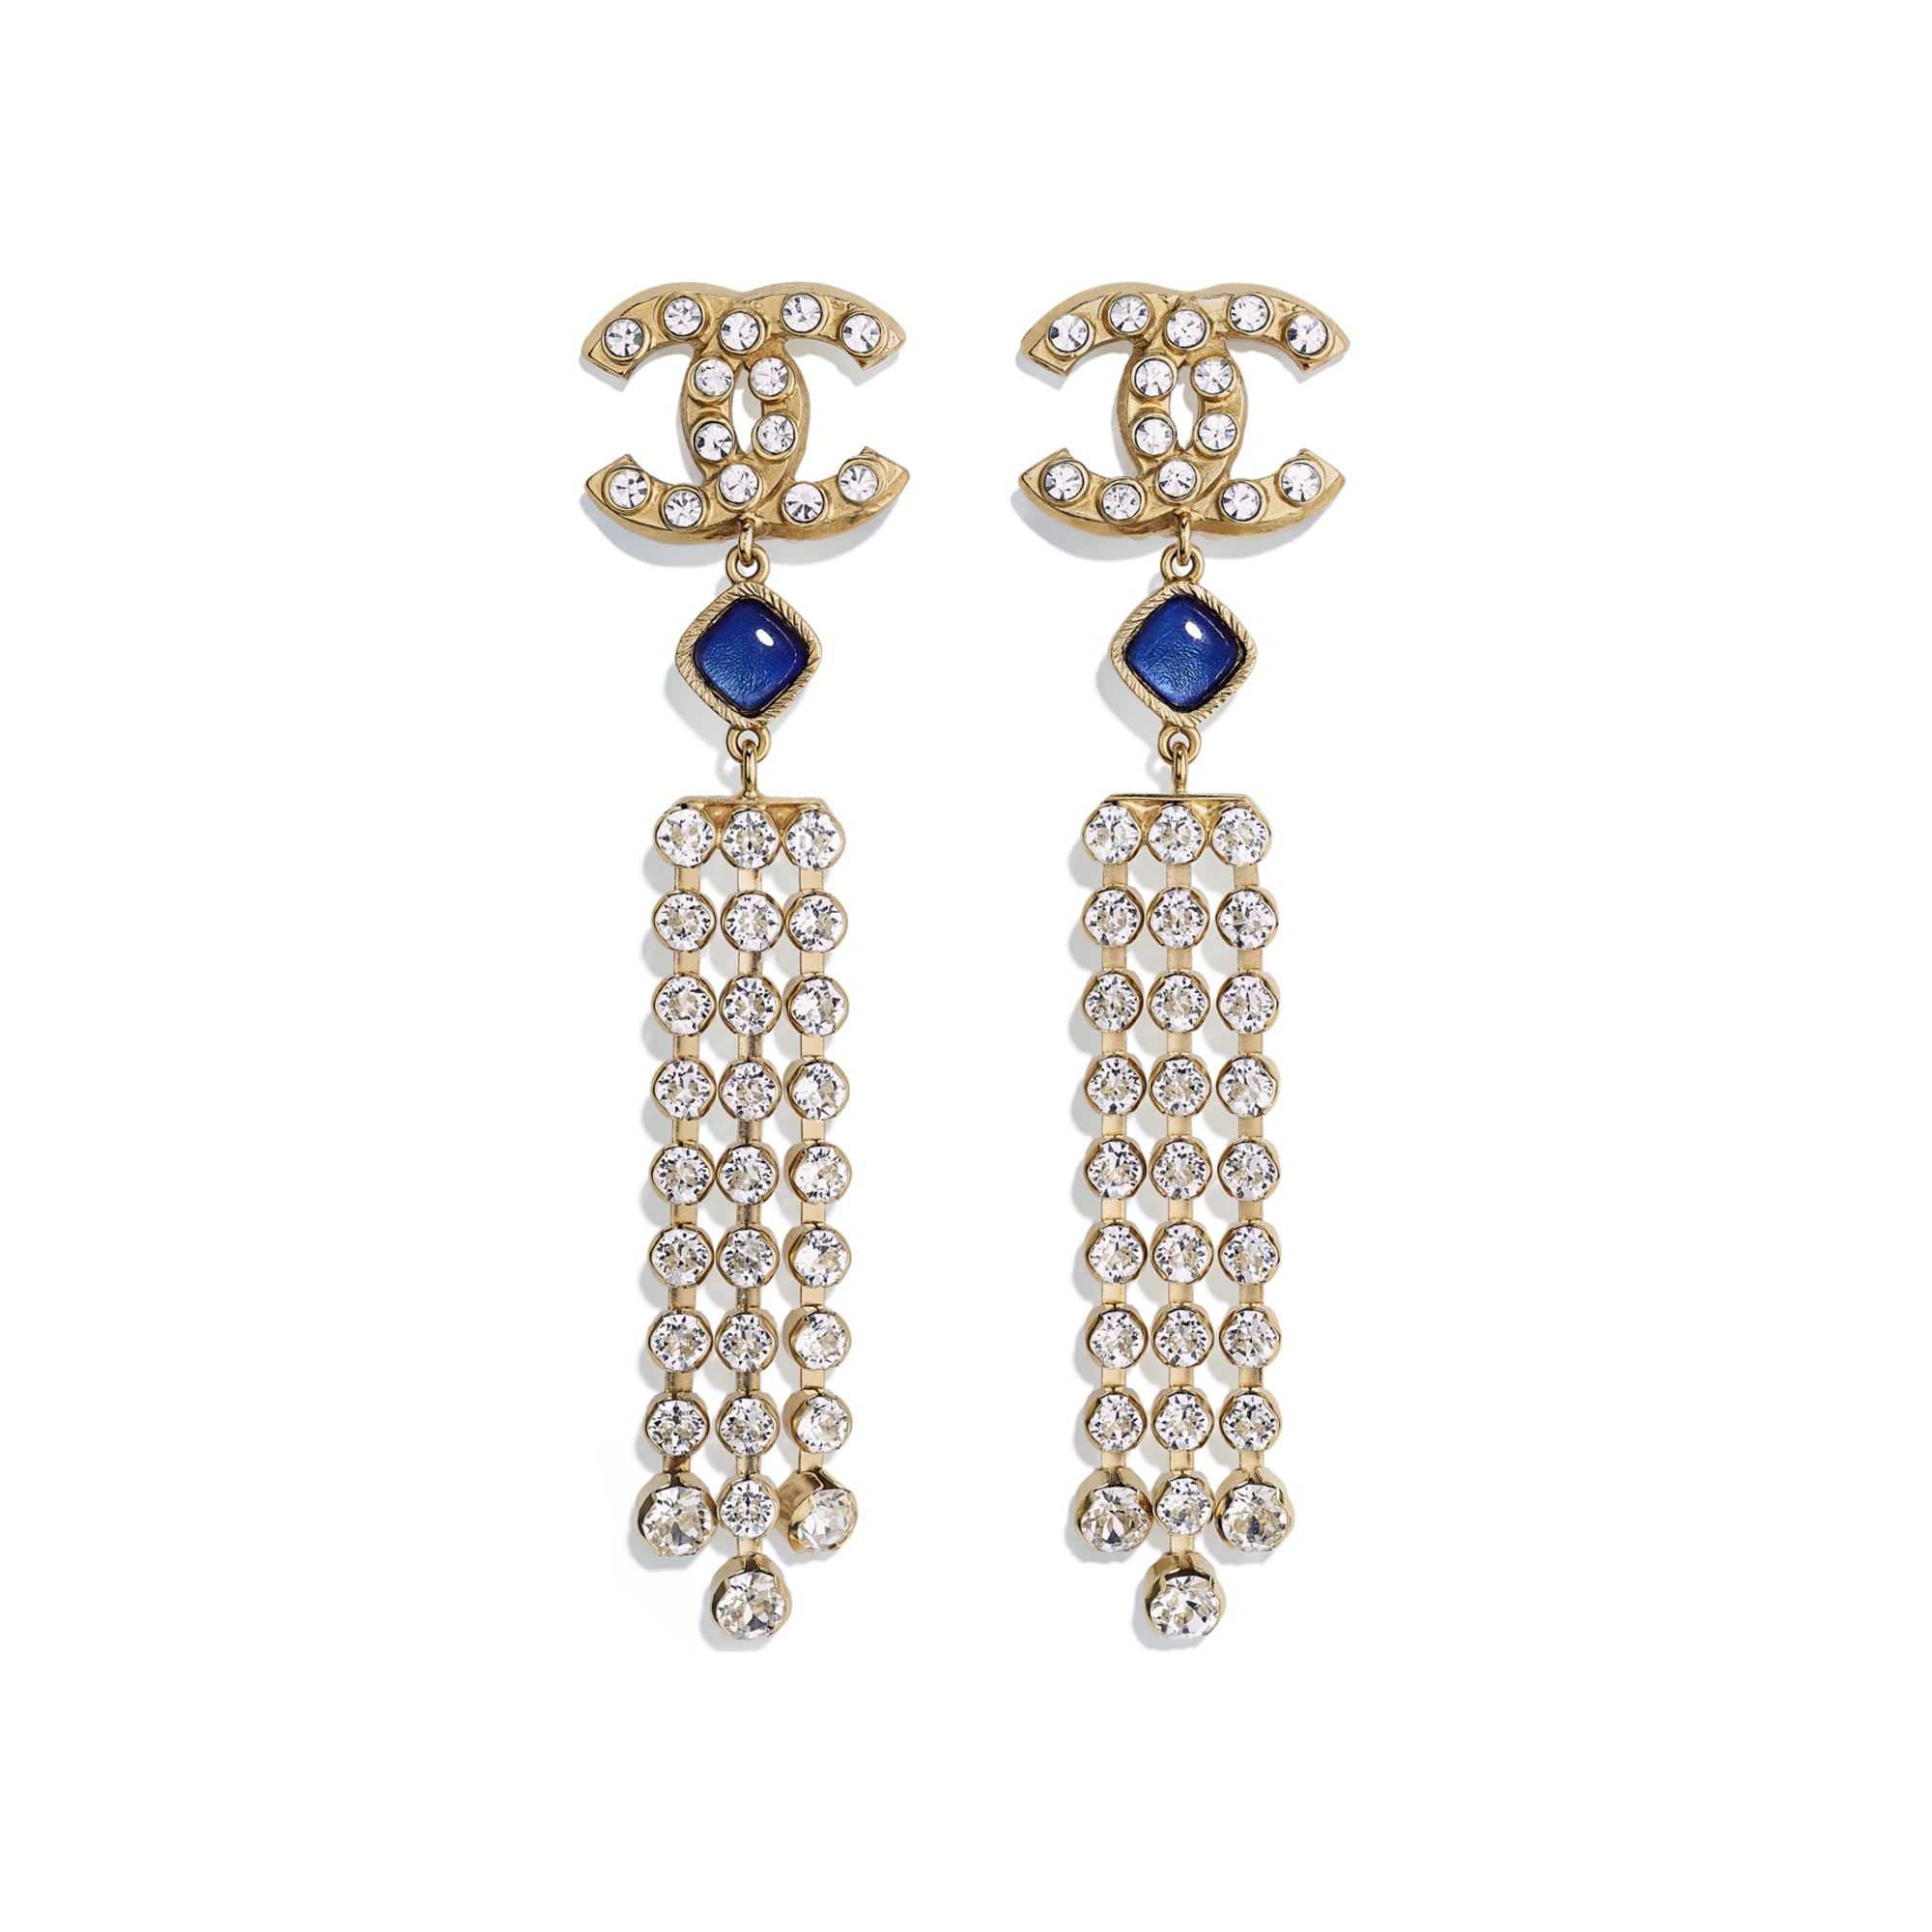 Earrings - Gold, Blue & Crystal - Metal, Glass & Diamanté - CHANEL - Default view - see standard sized version